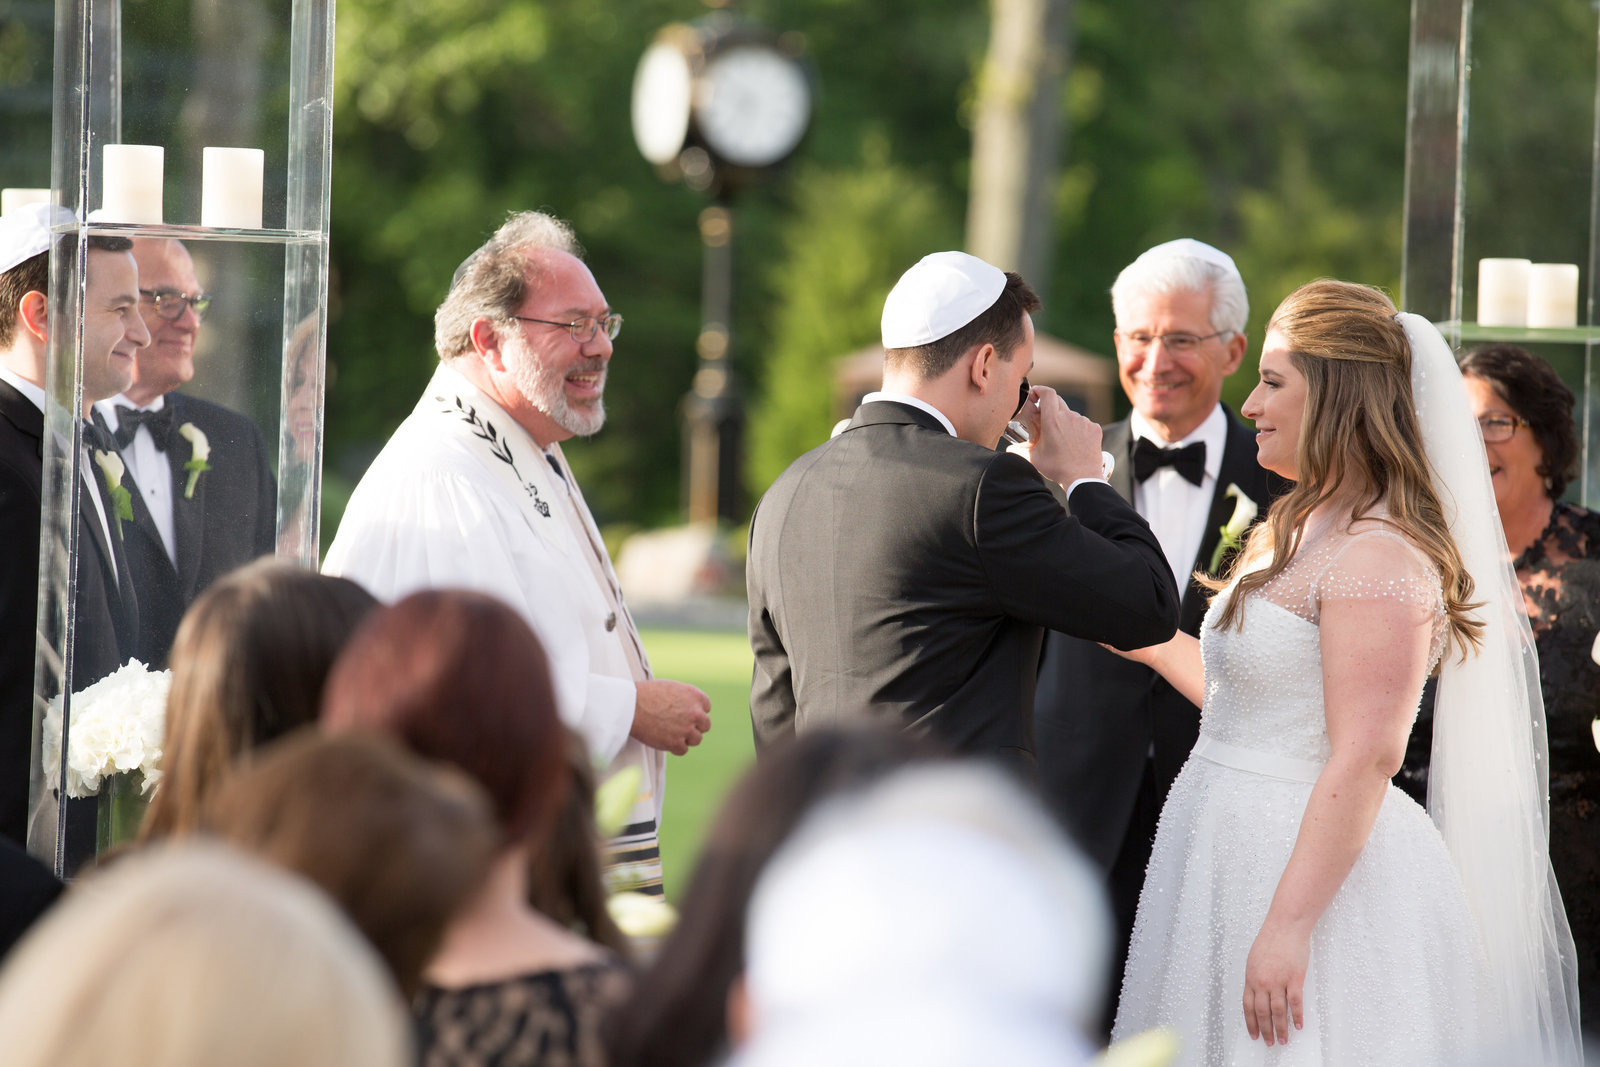 drinking from the cup of wine during a Jewish ceremony